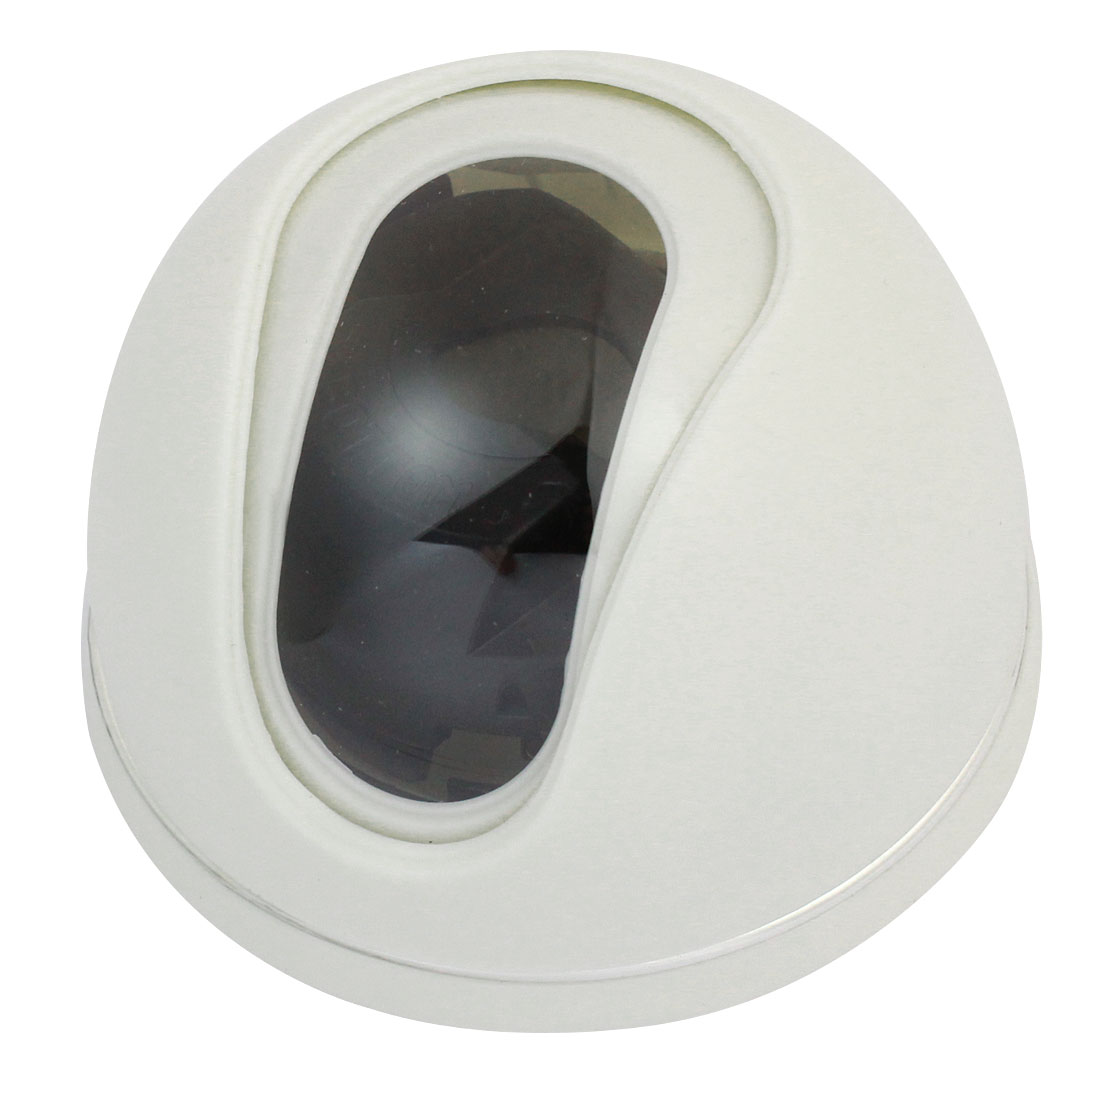 "Indoor 2.2"" High White Plastic CCTV Dome Camera Housing Case"